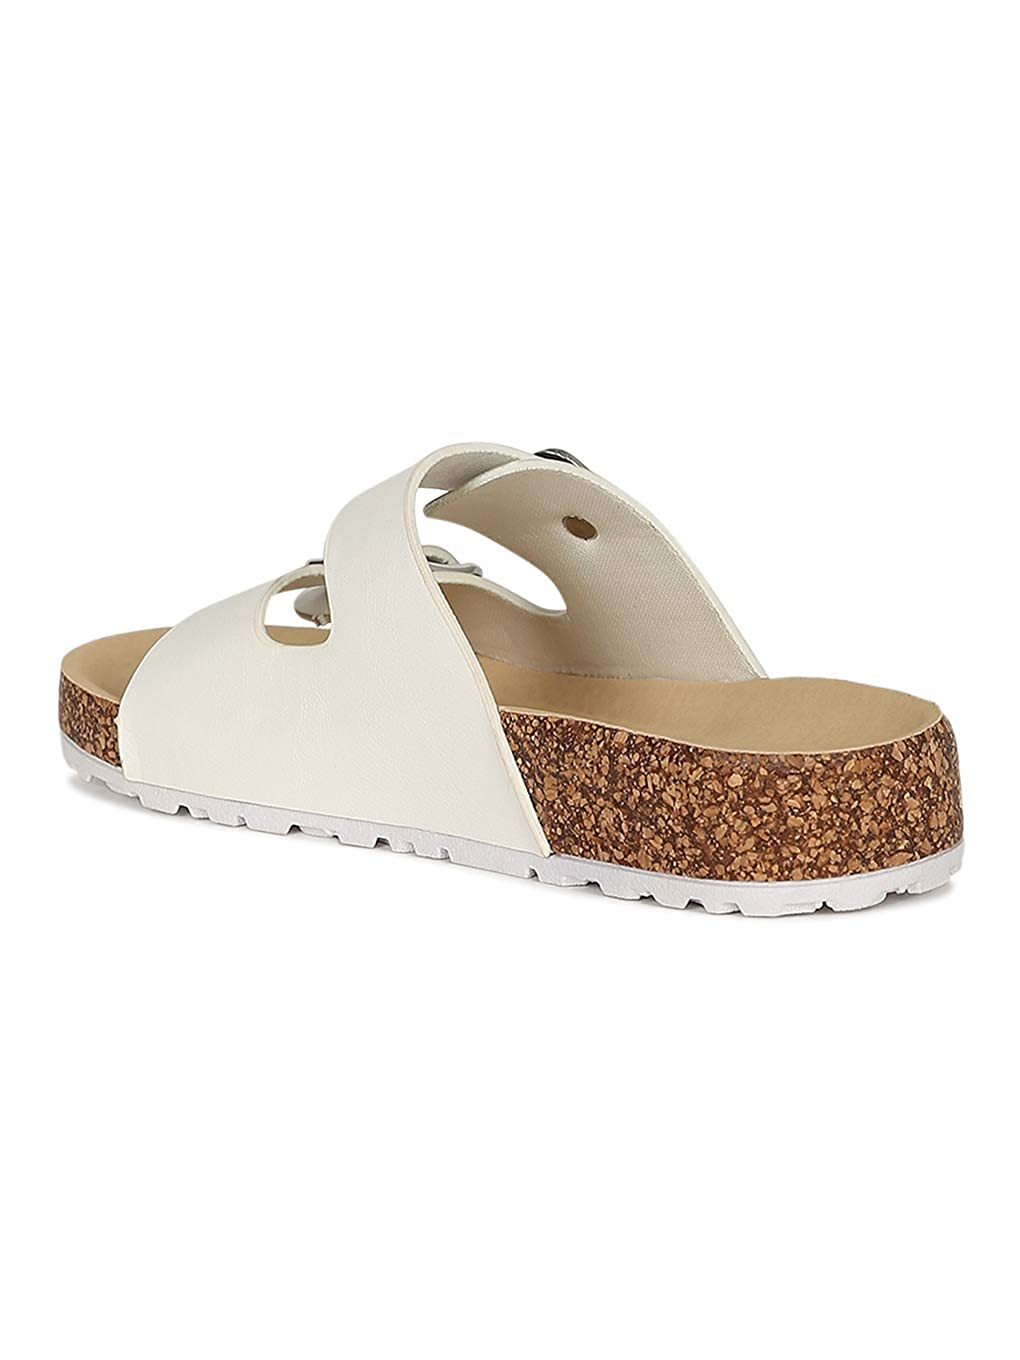 Alrisco Women Leatherette Open Toe Buckled Cork Footbed Slide Sandal RG57